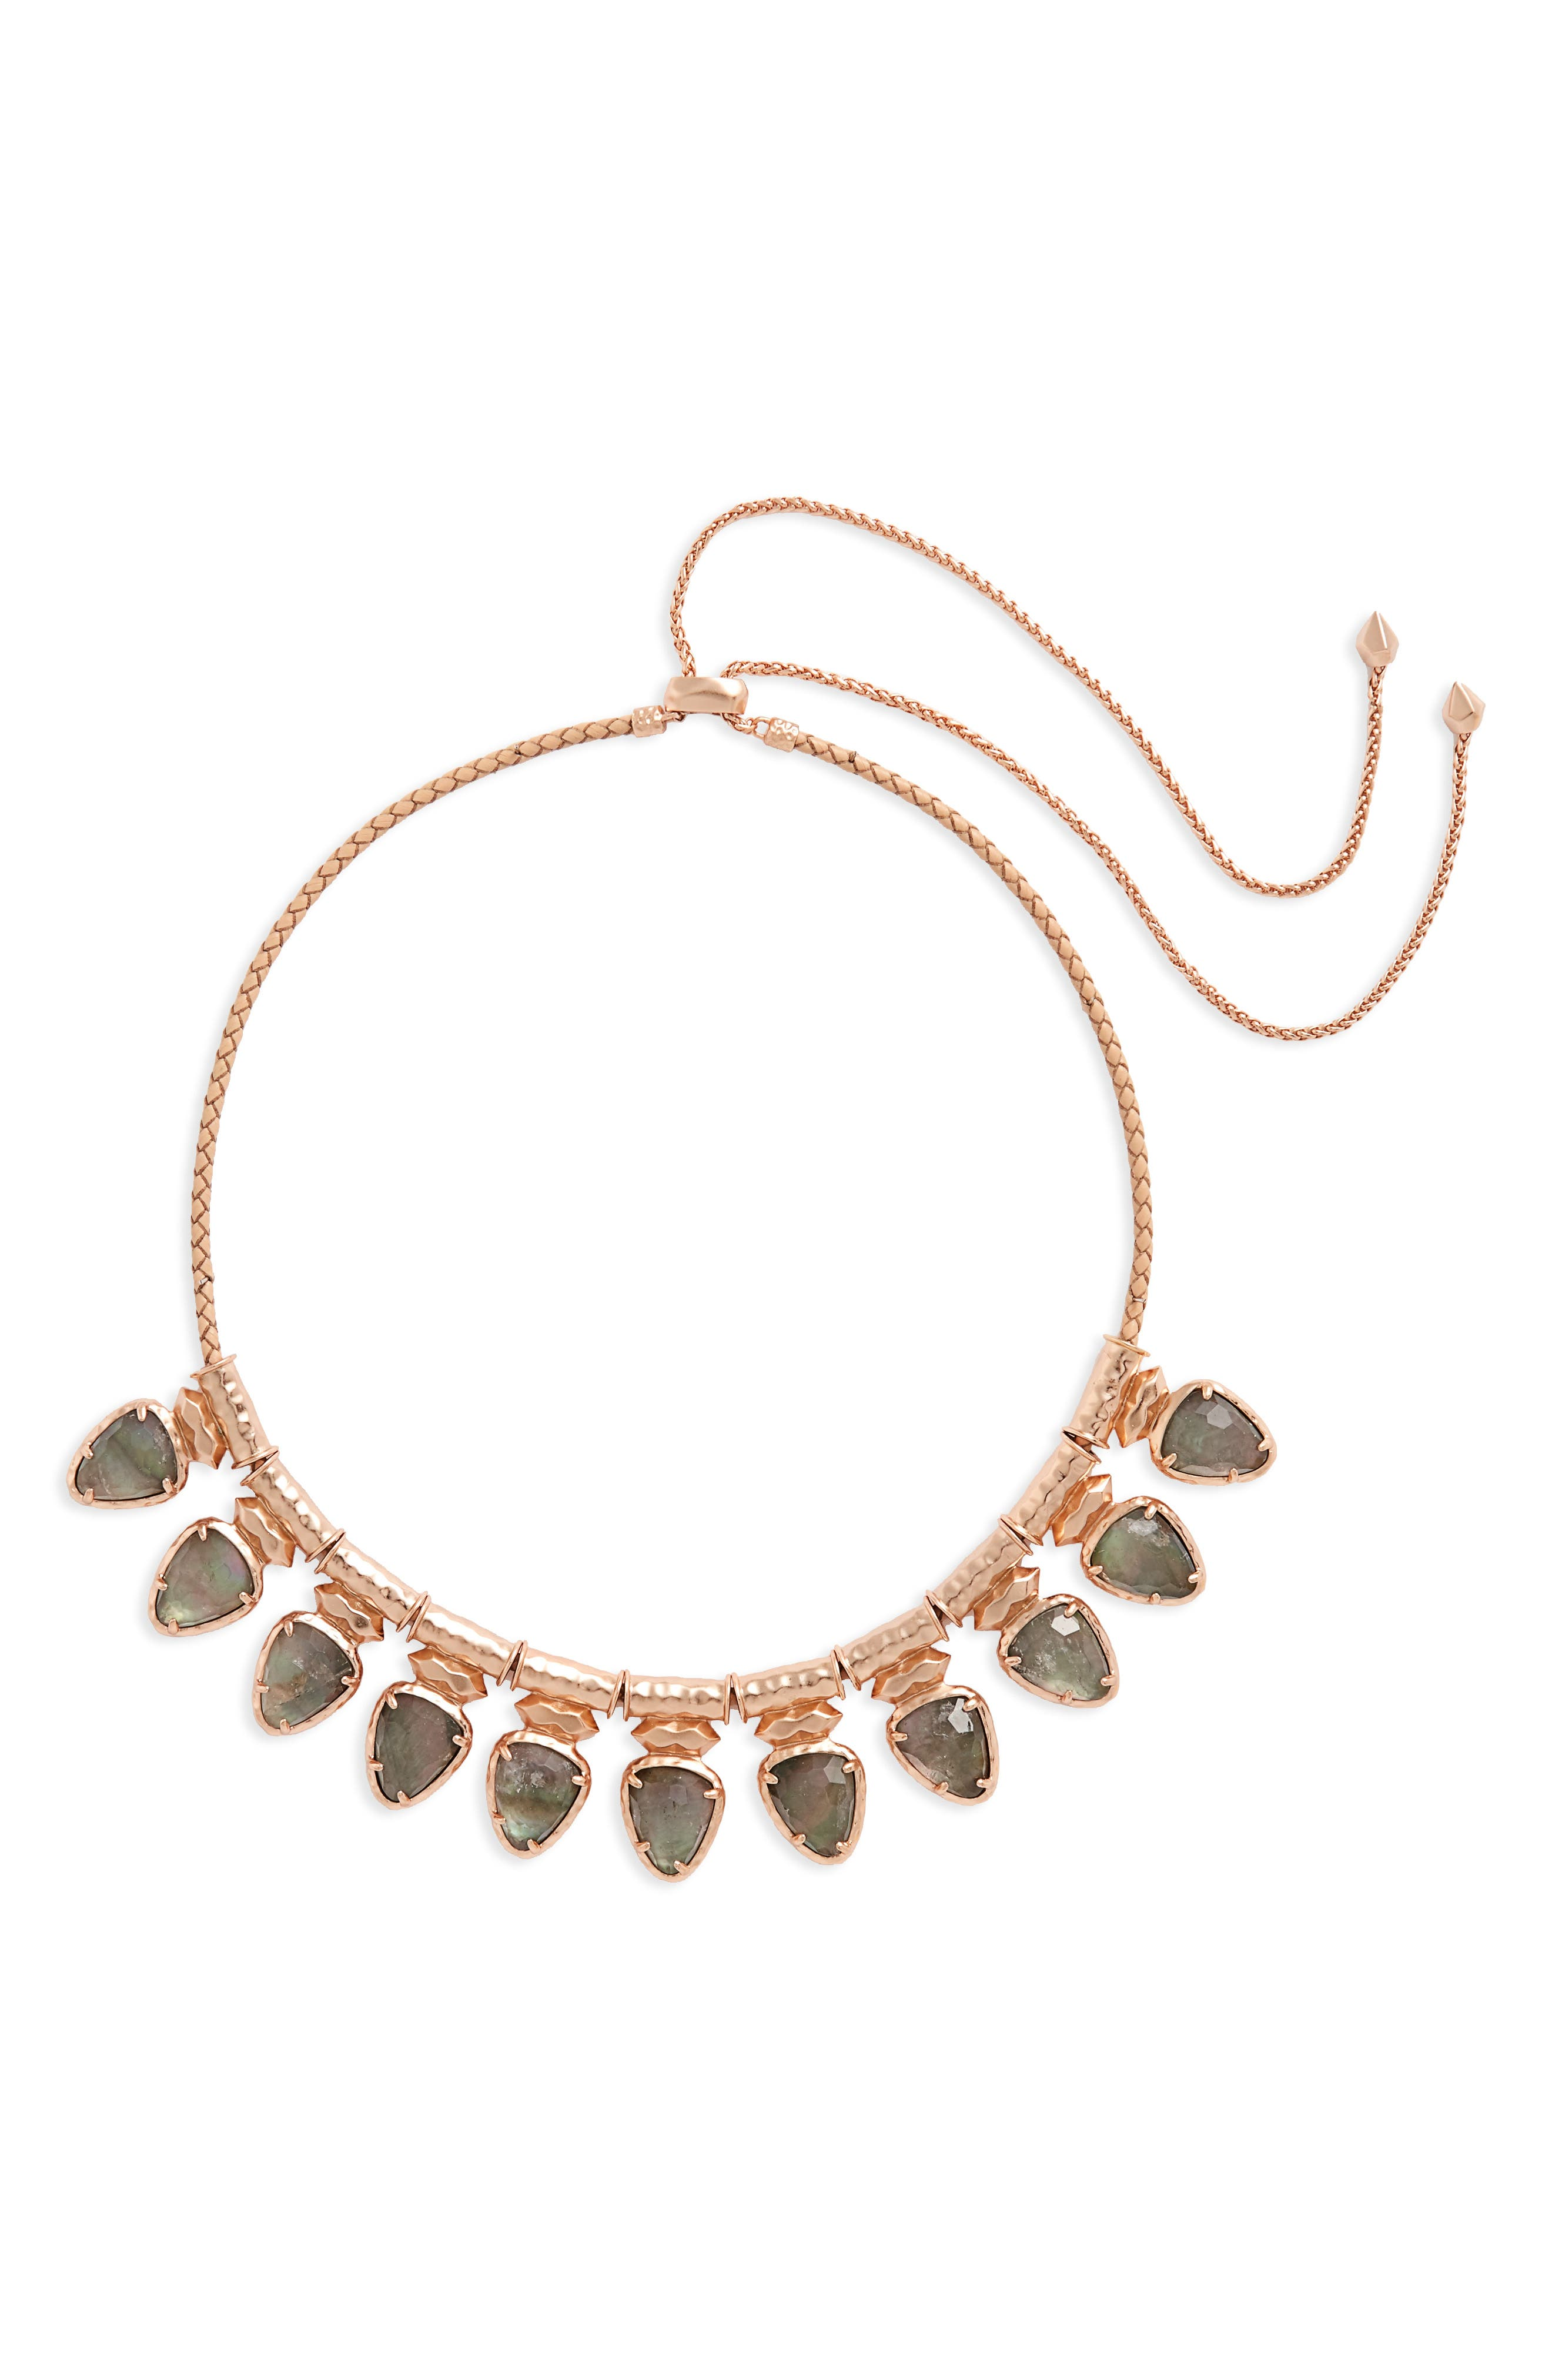 Willow Frontal Necklace,                             Main thumbnail 1, color,                             650